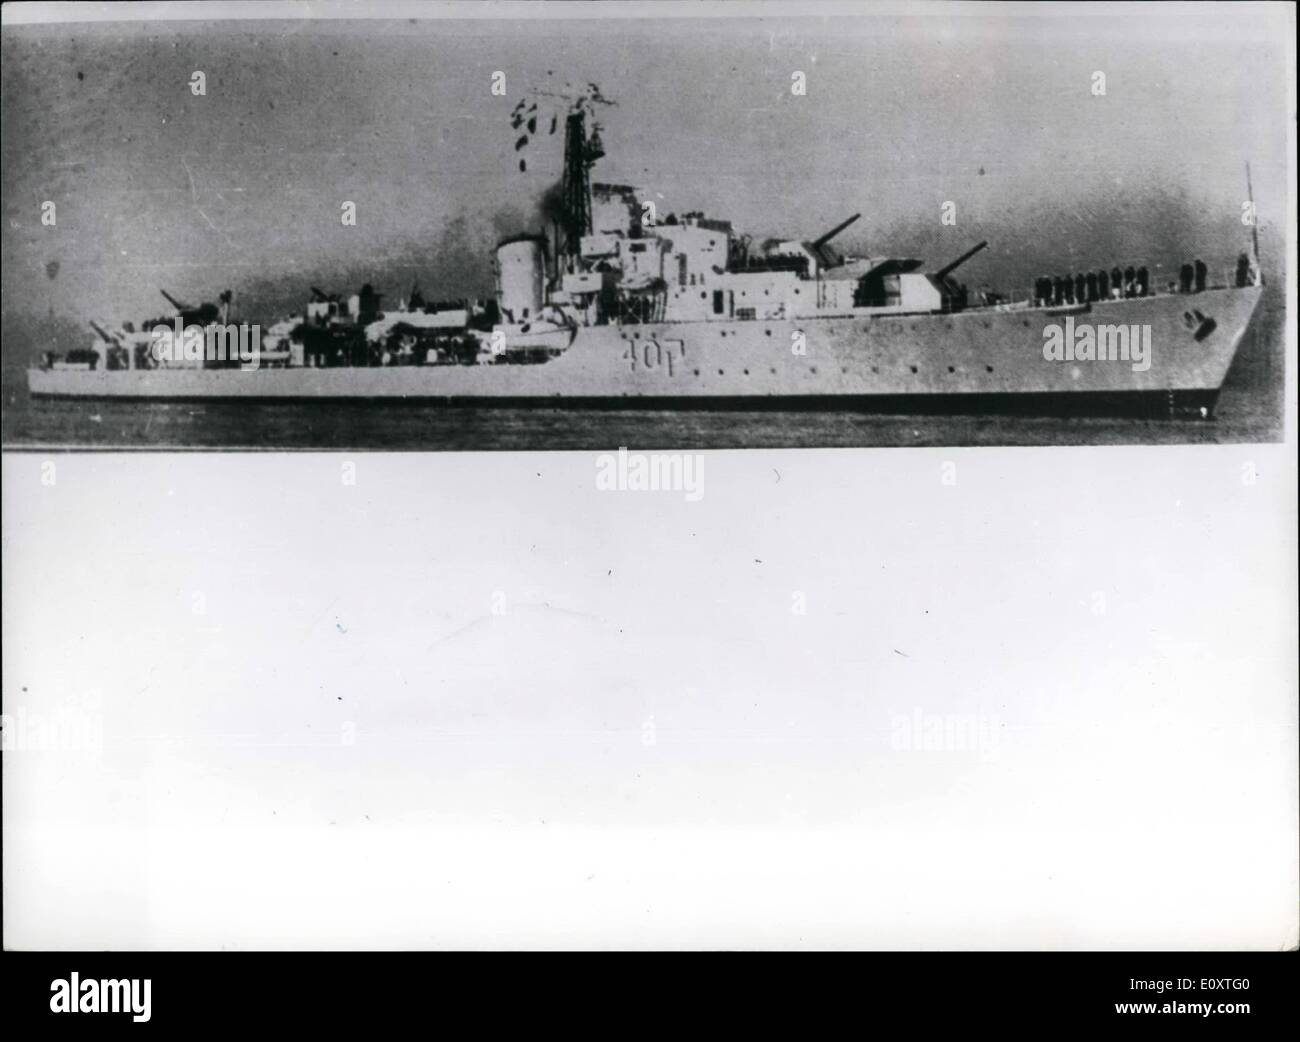 Nov. 11, 1967 - Israeli Destroyer Eilat Sunk. Photo Shows View of the Israeli destroyer Eilat which was recently sunk off port said by missiles from two Egyptian motor boats. - Stock Image